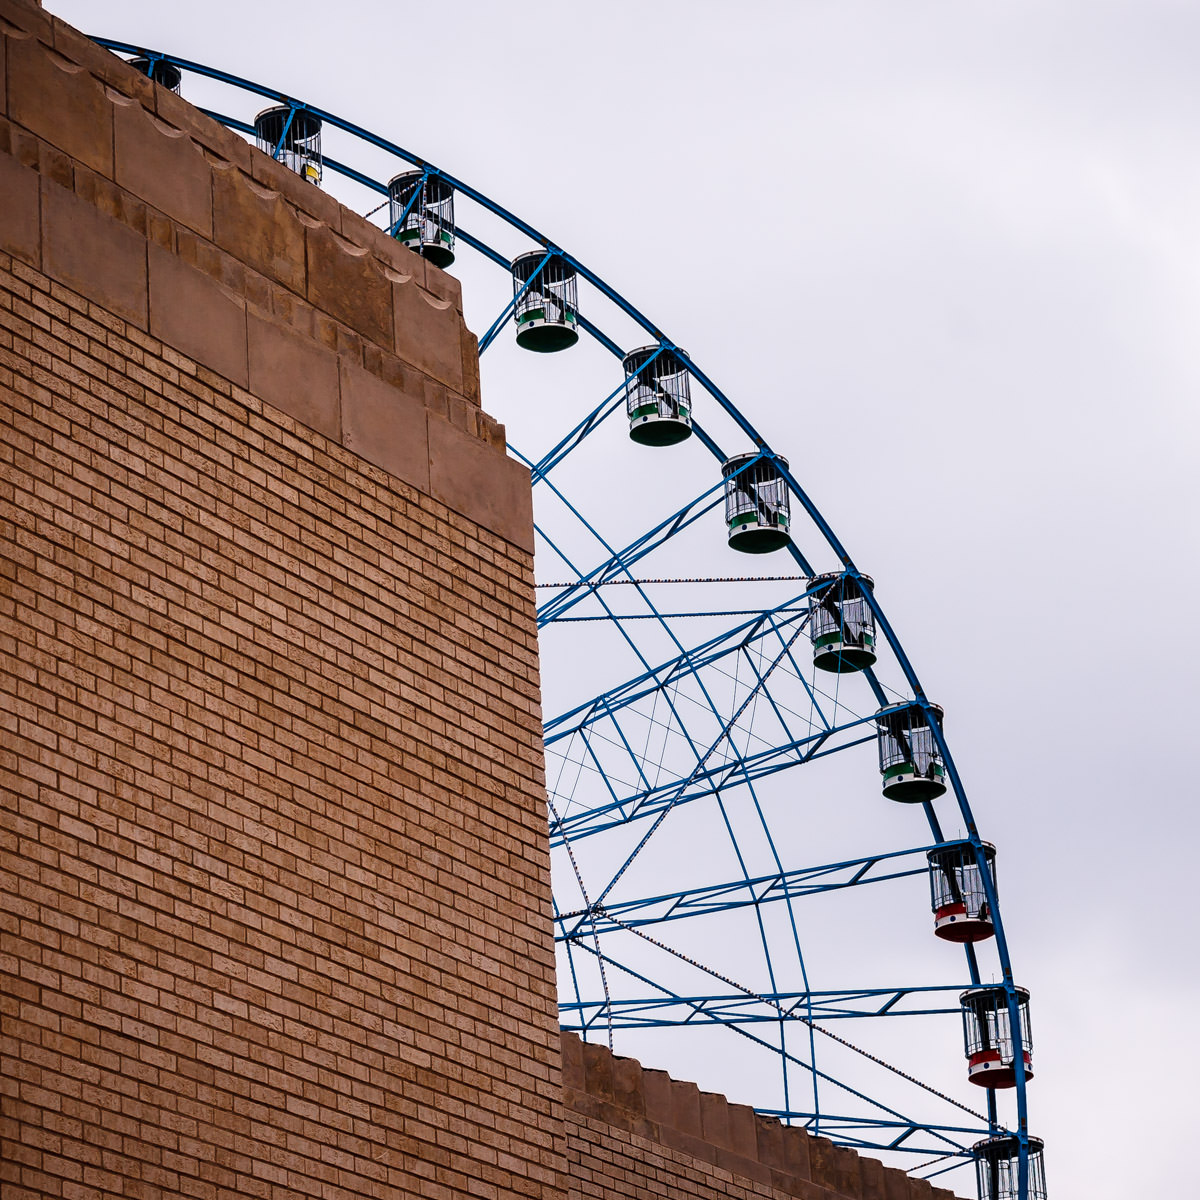 The Texas Star Ferris wheel peeks out from behind a wall of an adjacent building at Fair Park, Dallas.